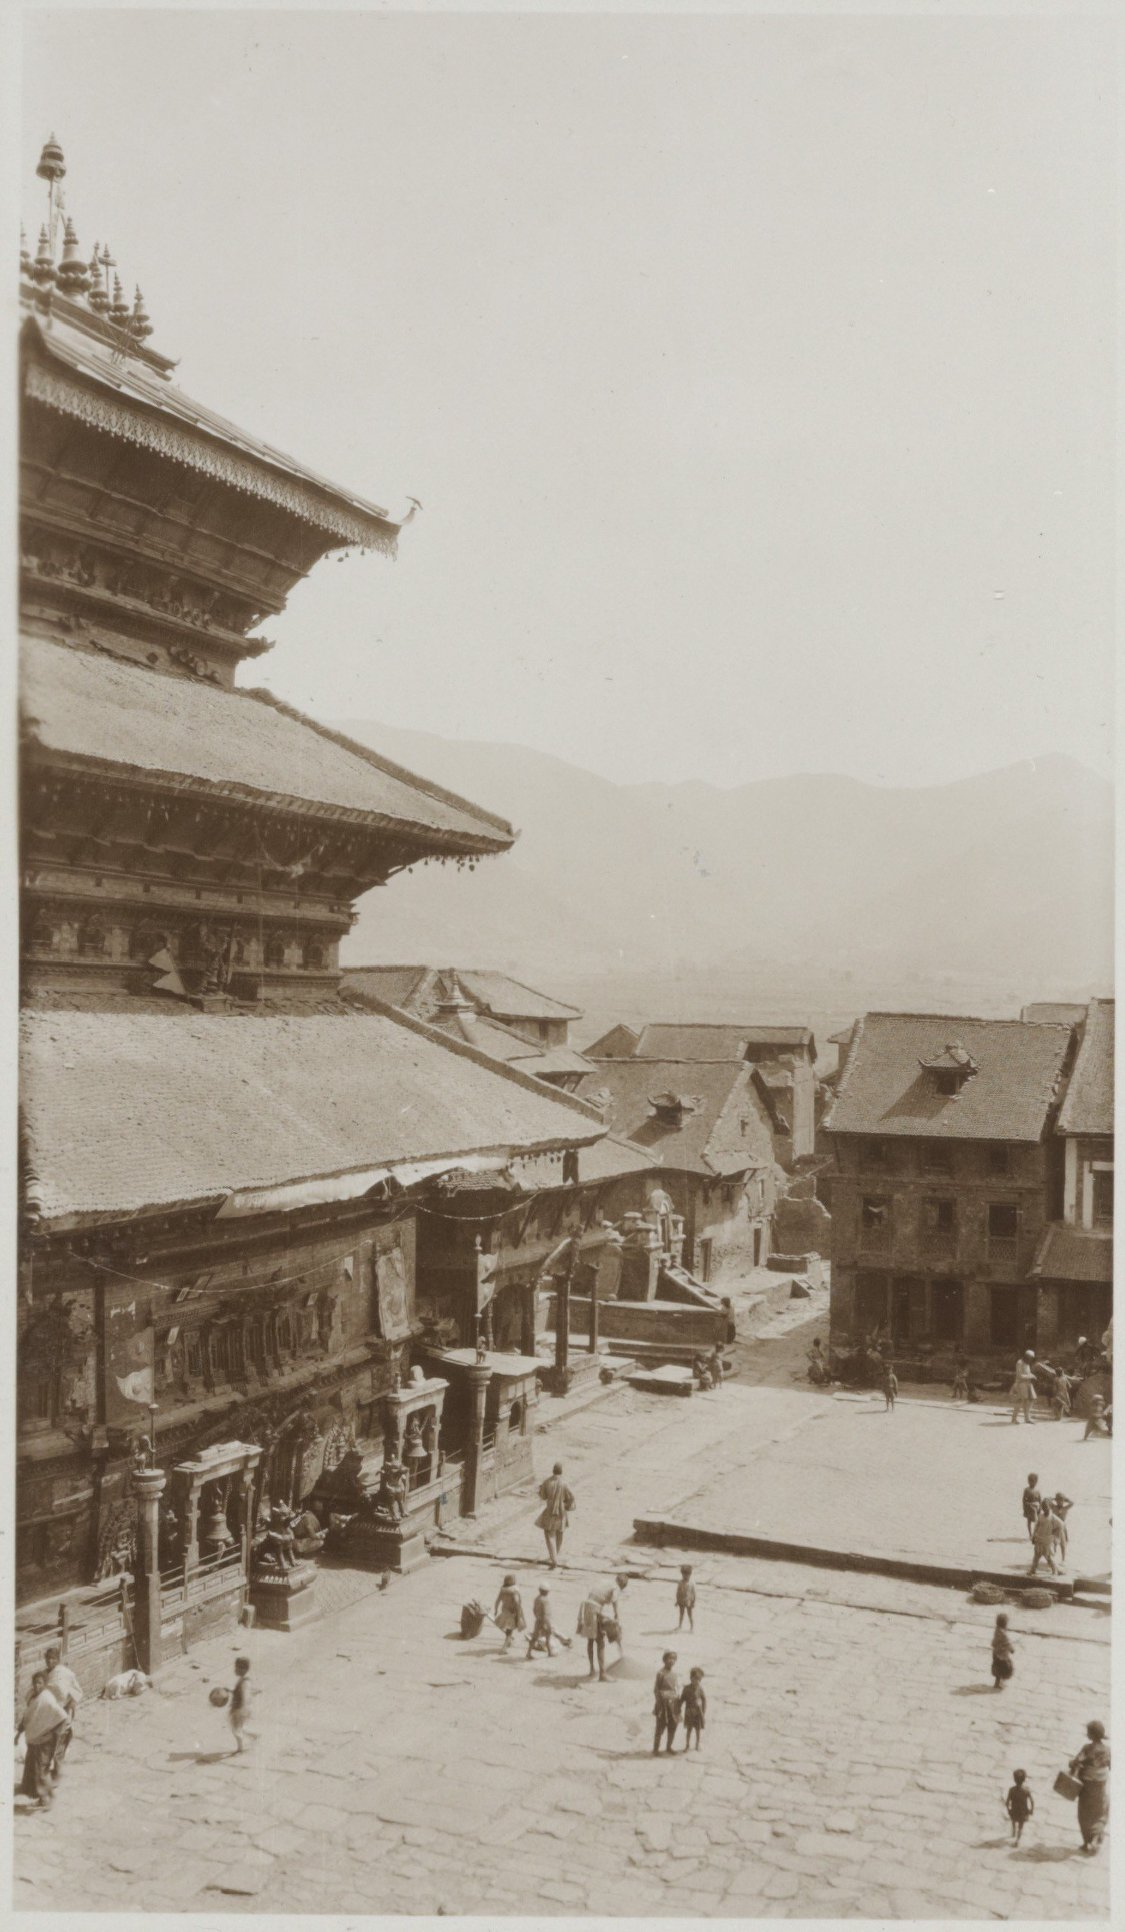 Bhairabnath Temple during 1932-34 image